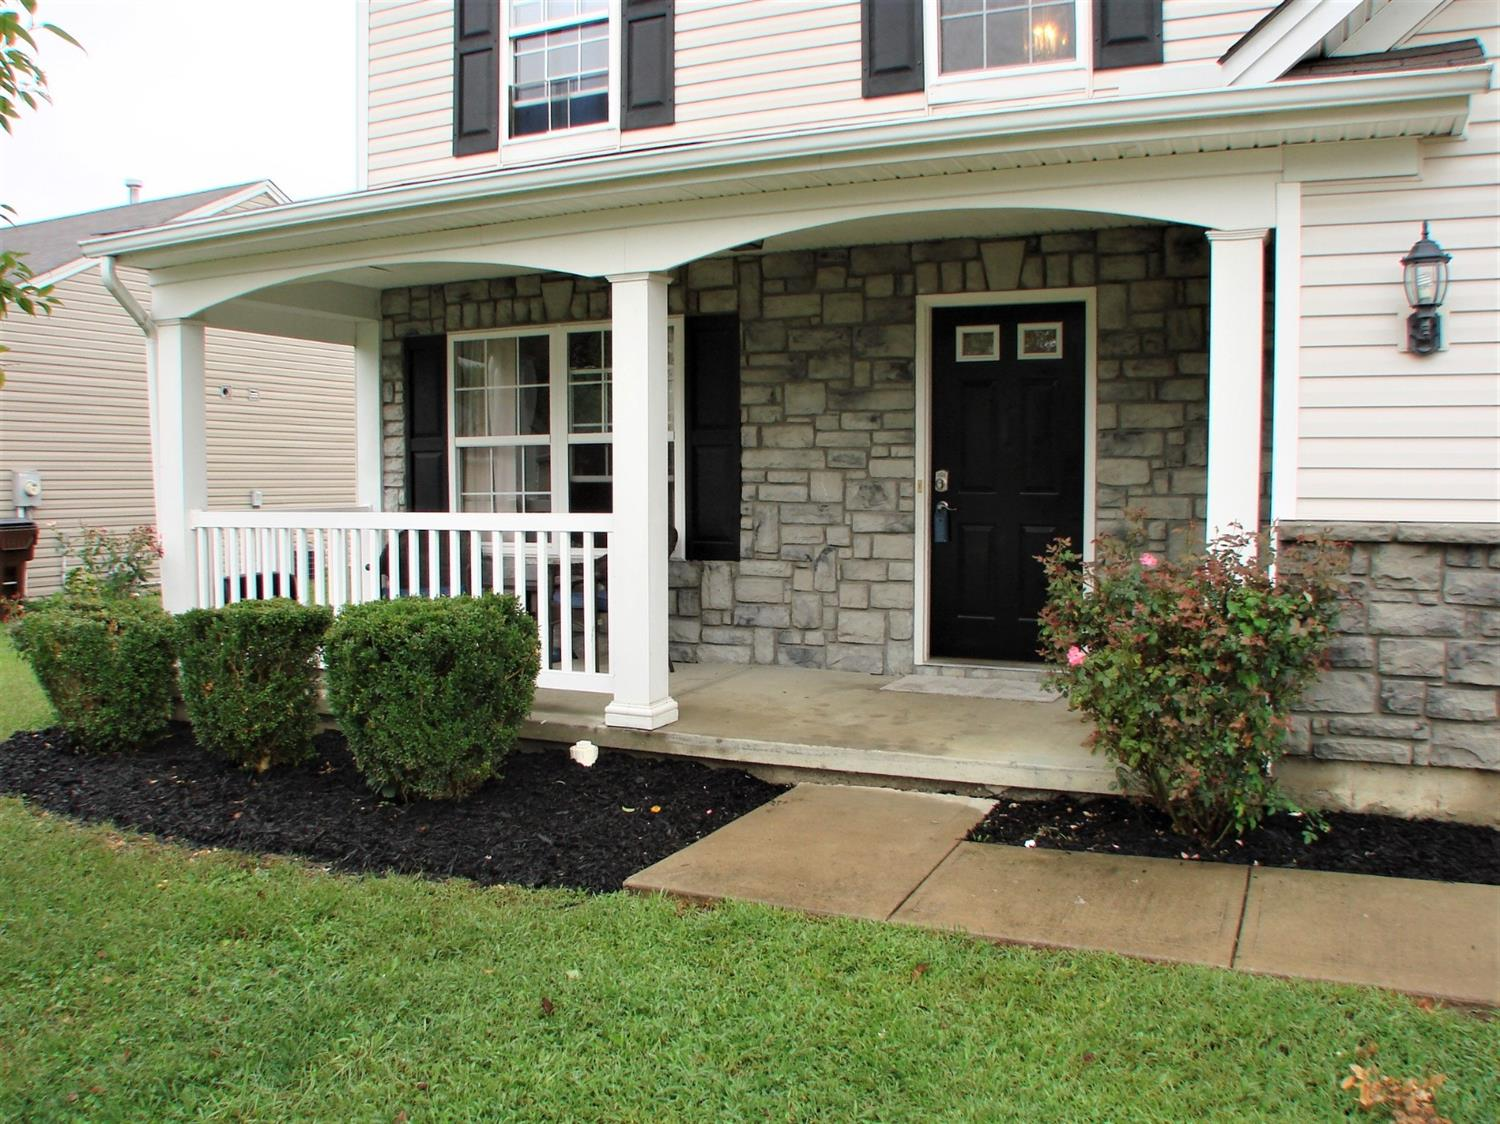 Property for sale at 13 Hummingbird Way, Amelia,  OH 45102